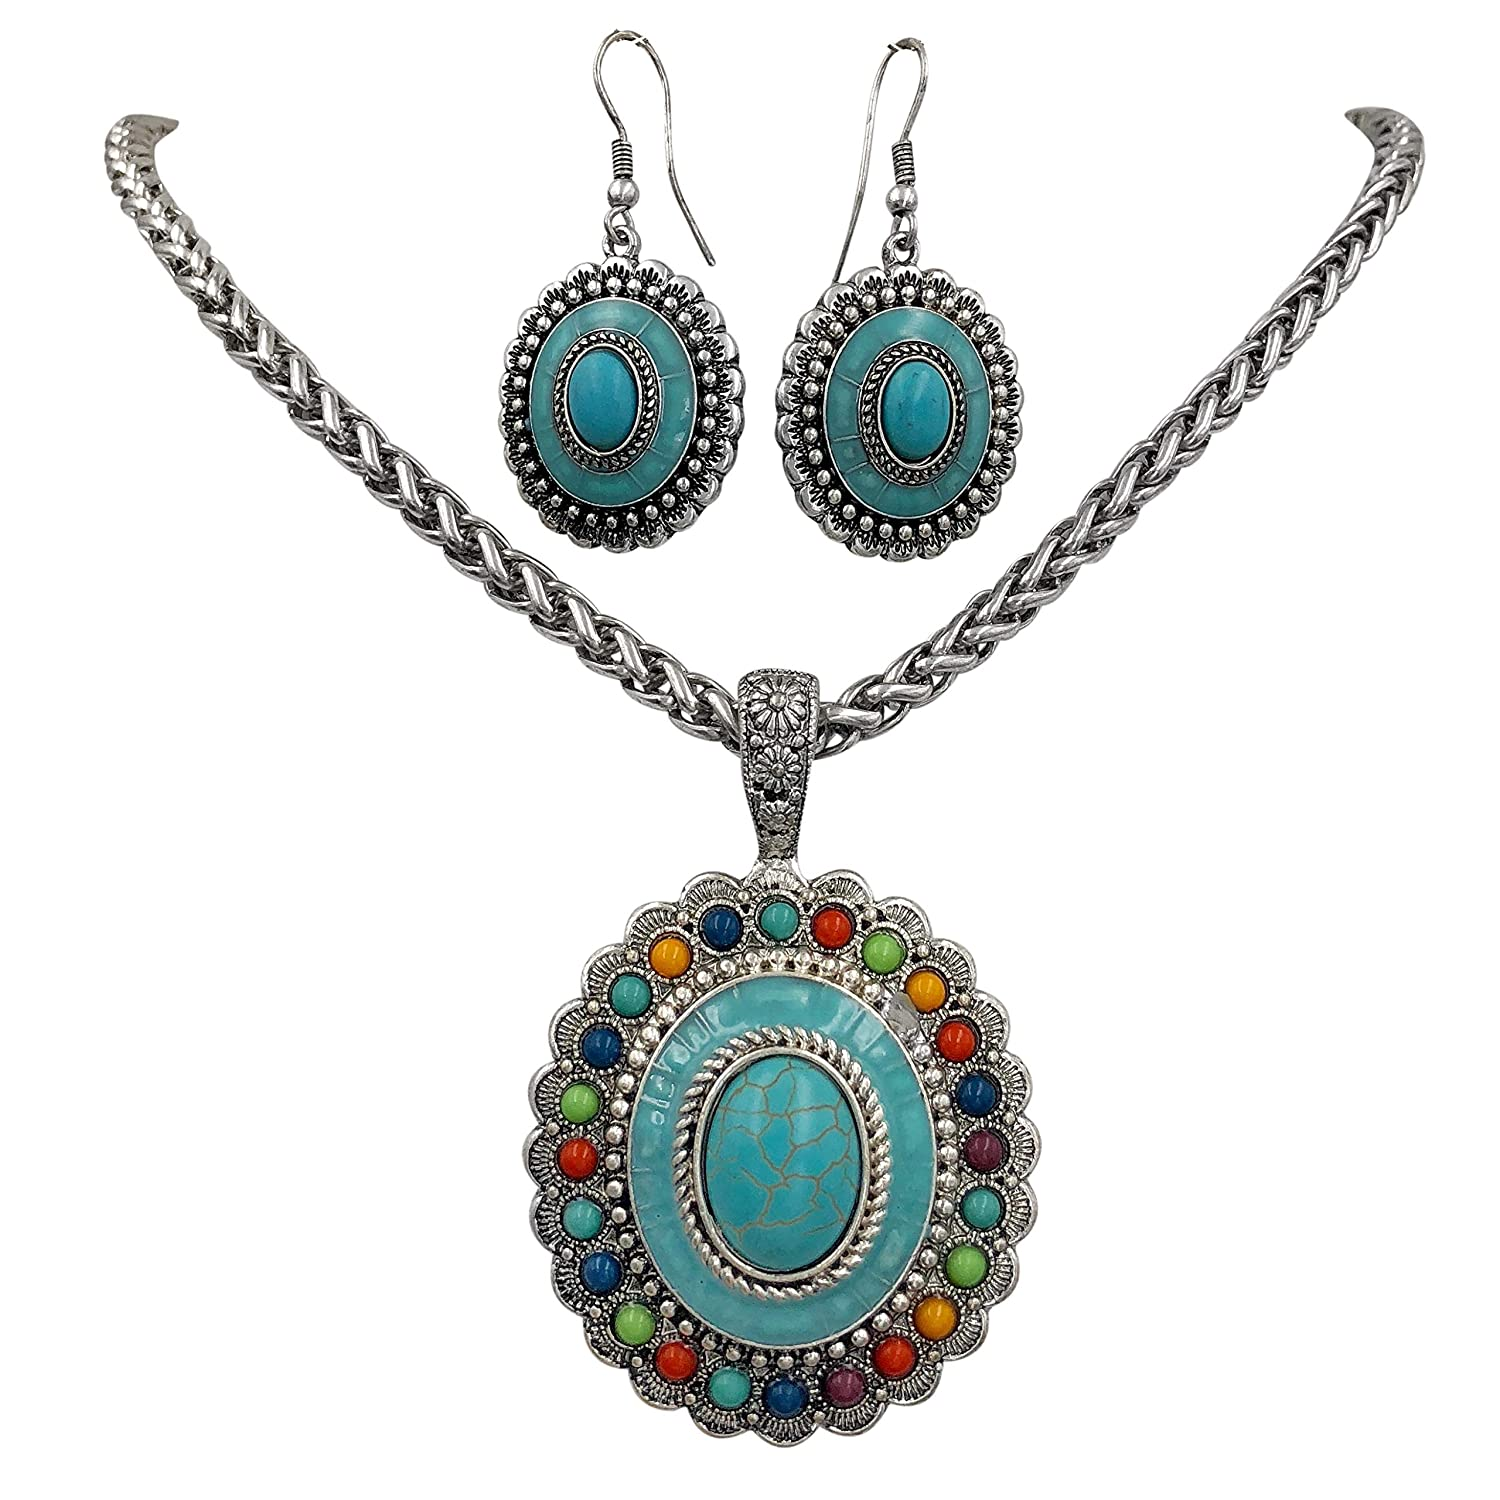 Gypsy Jewels Multi Color Simple Pendant Silver Tone Imitation Turquoise Boutique Style Statement Necklace /& Dangle Earring Set